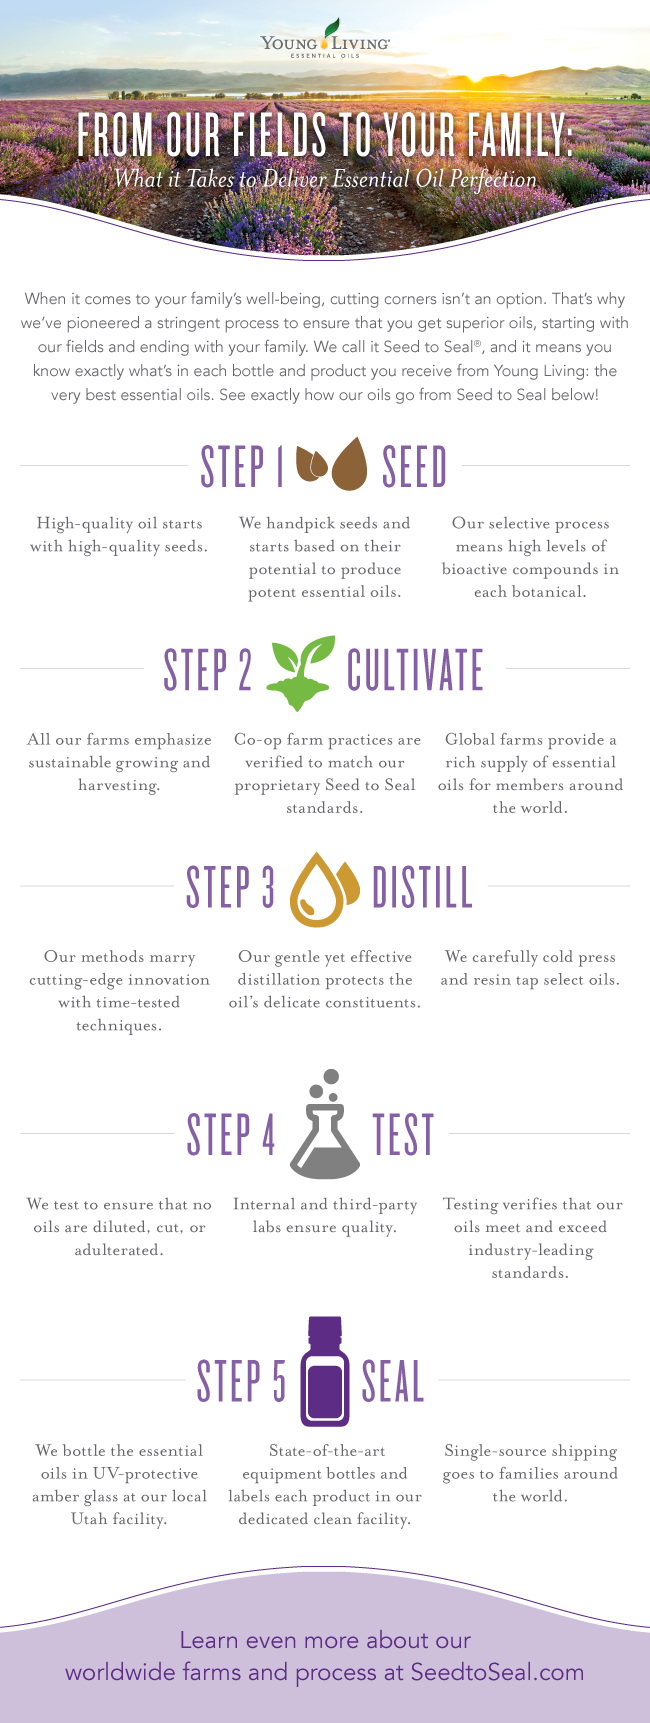 Blog Seed to Seal Infographic US 0316 sk Why Young Living?